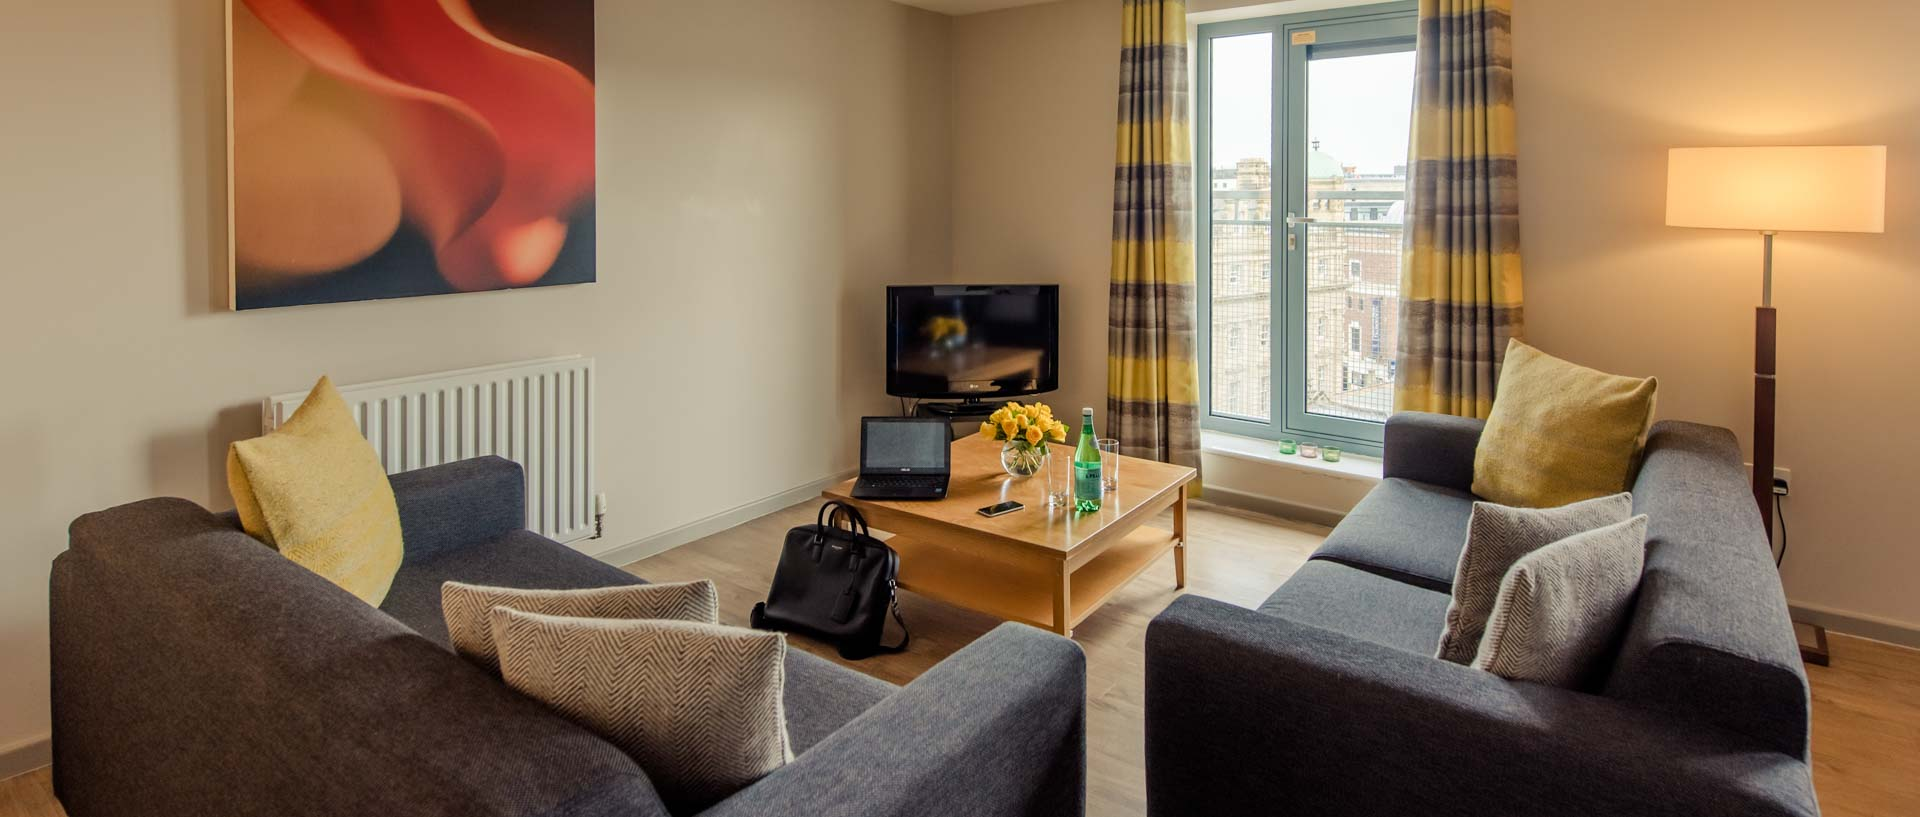 The living area of PREMIER SUITES Newcastle